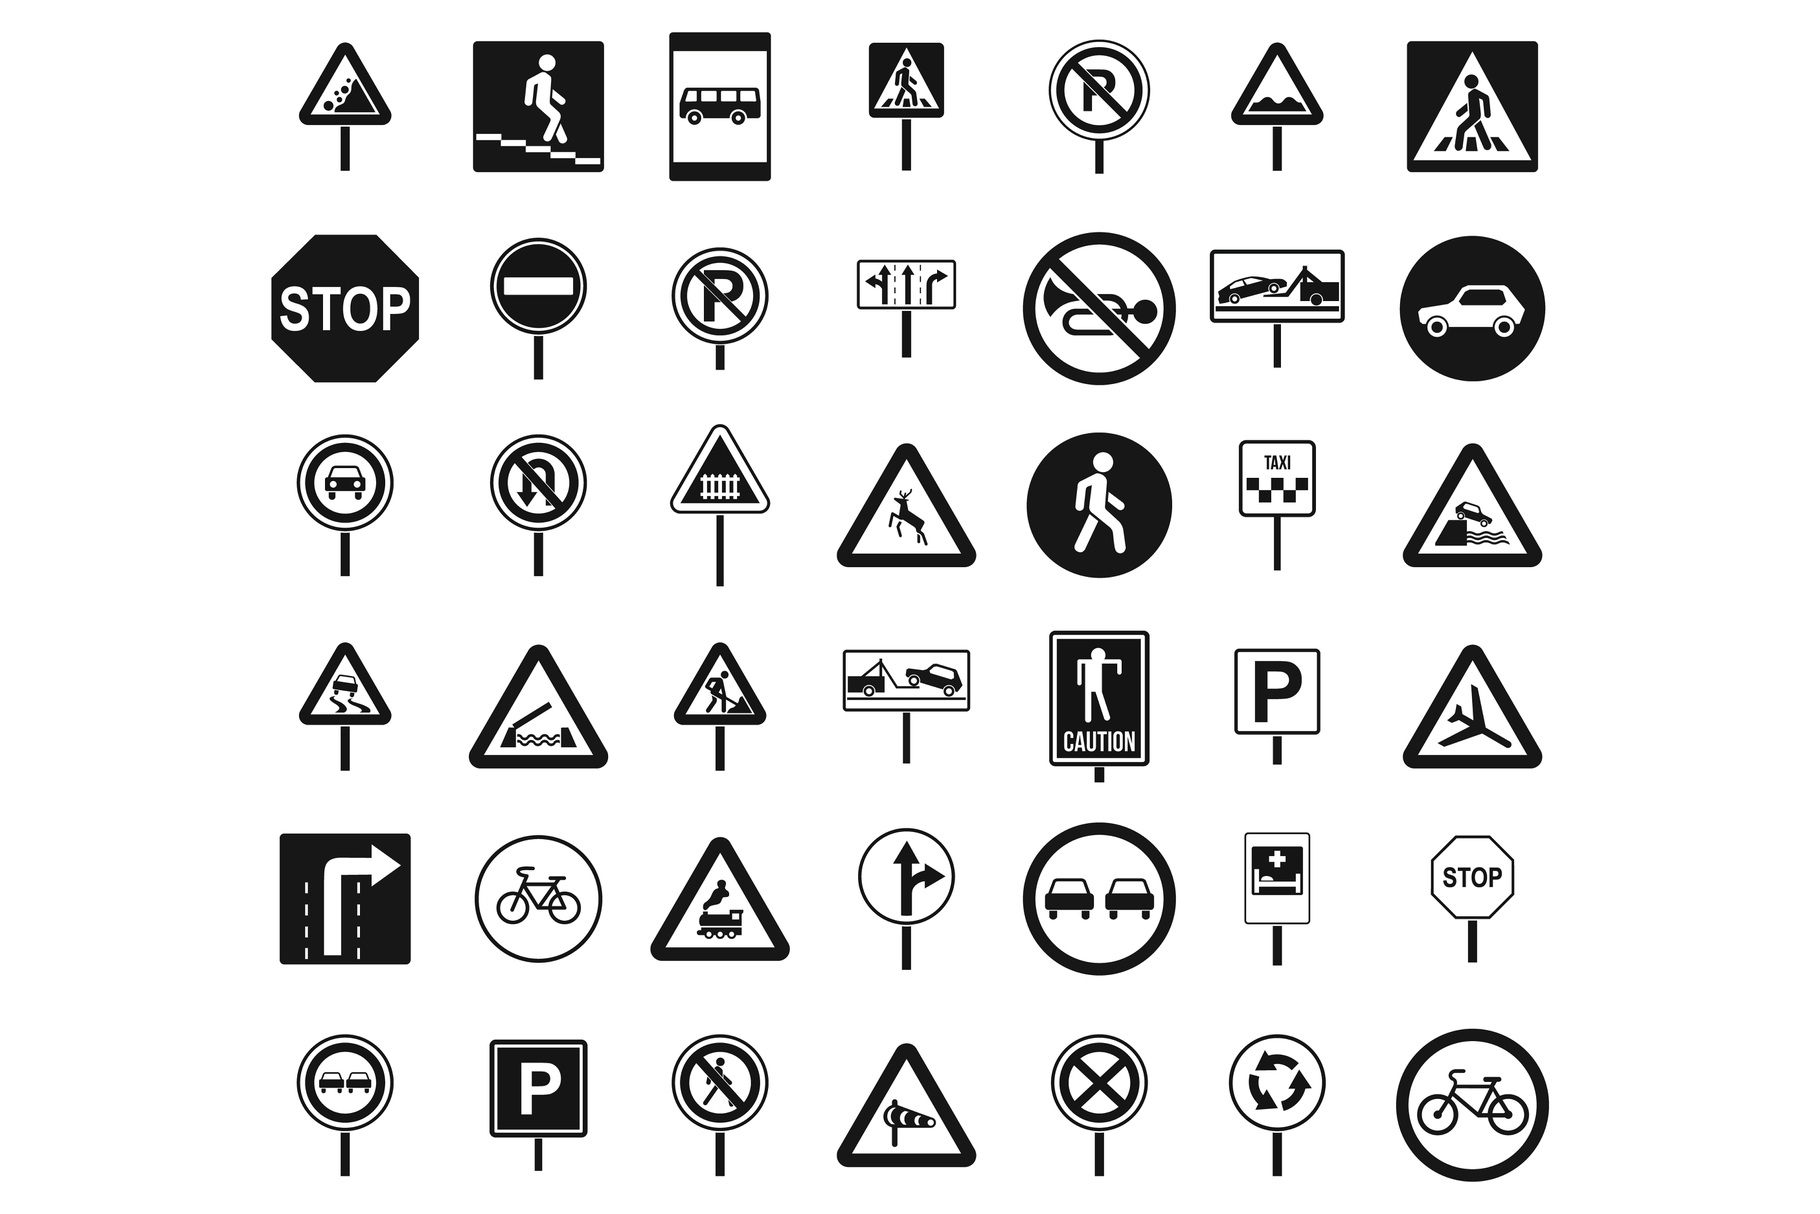 Road sings icon set, simple style example image 1